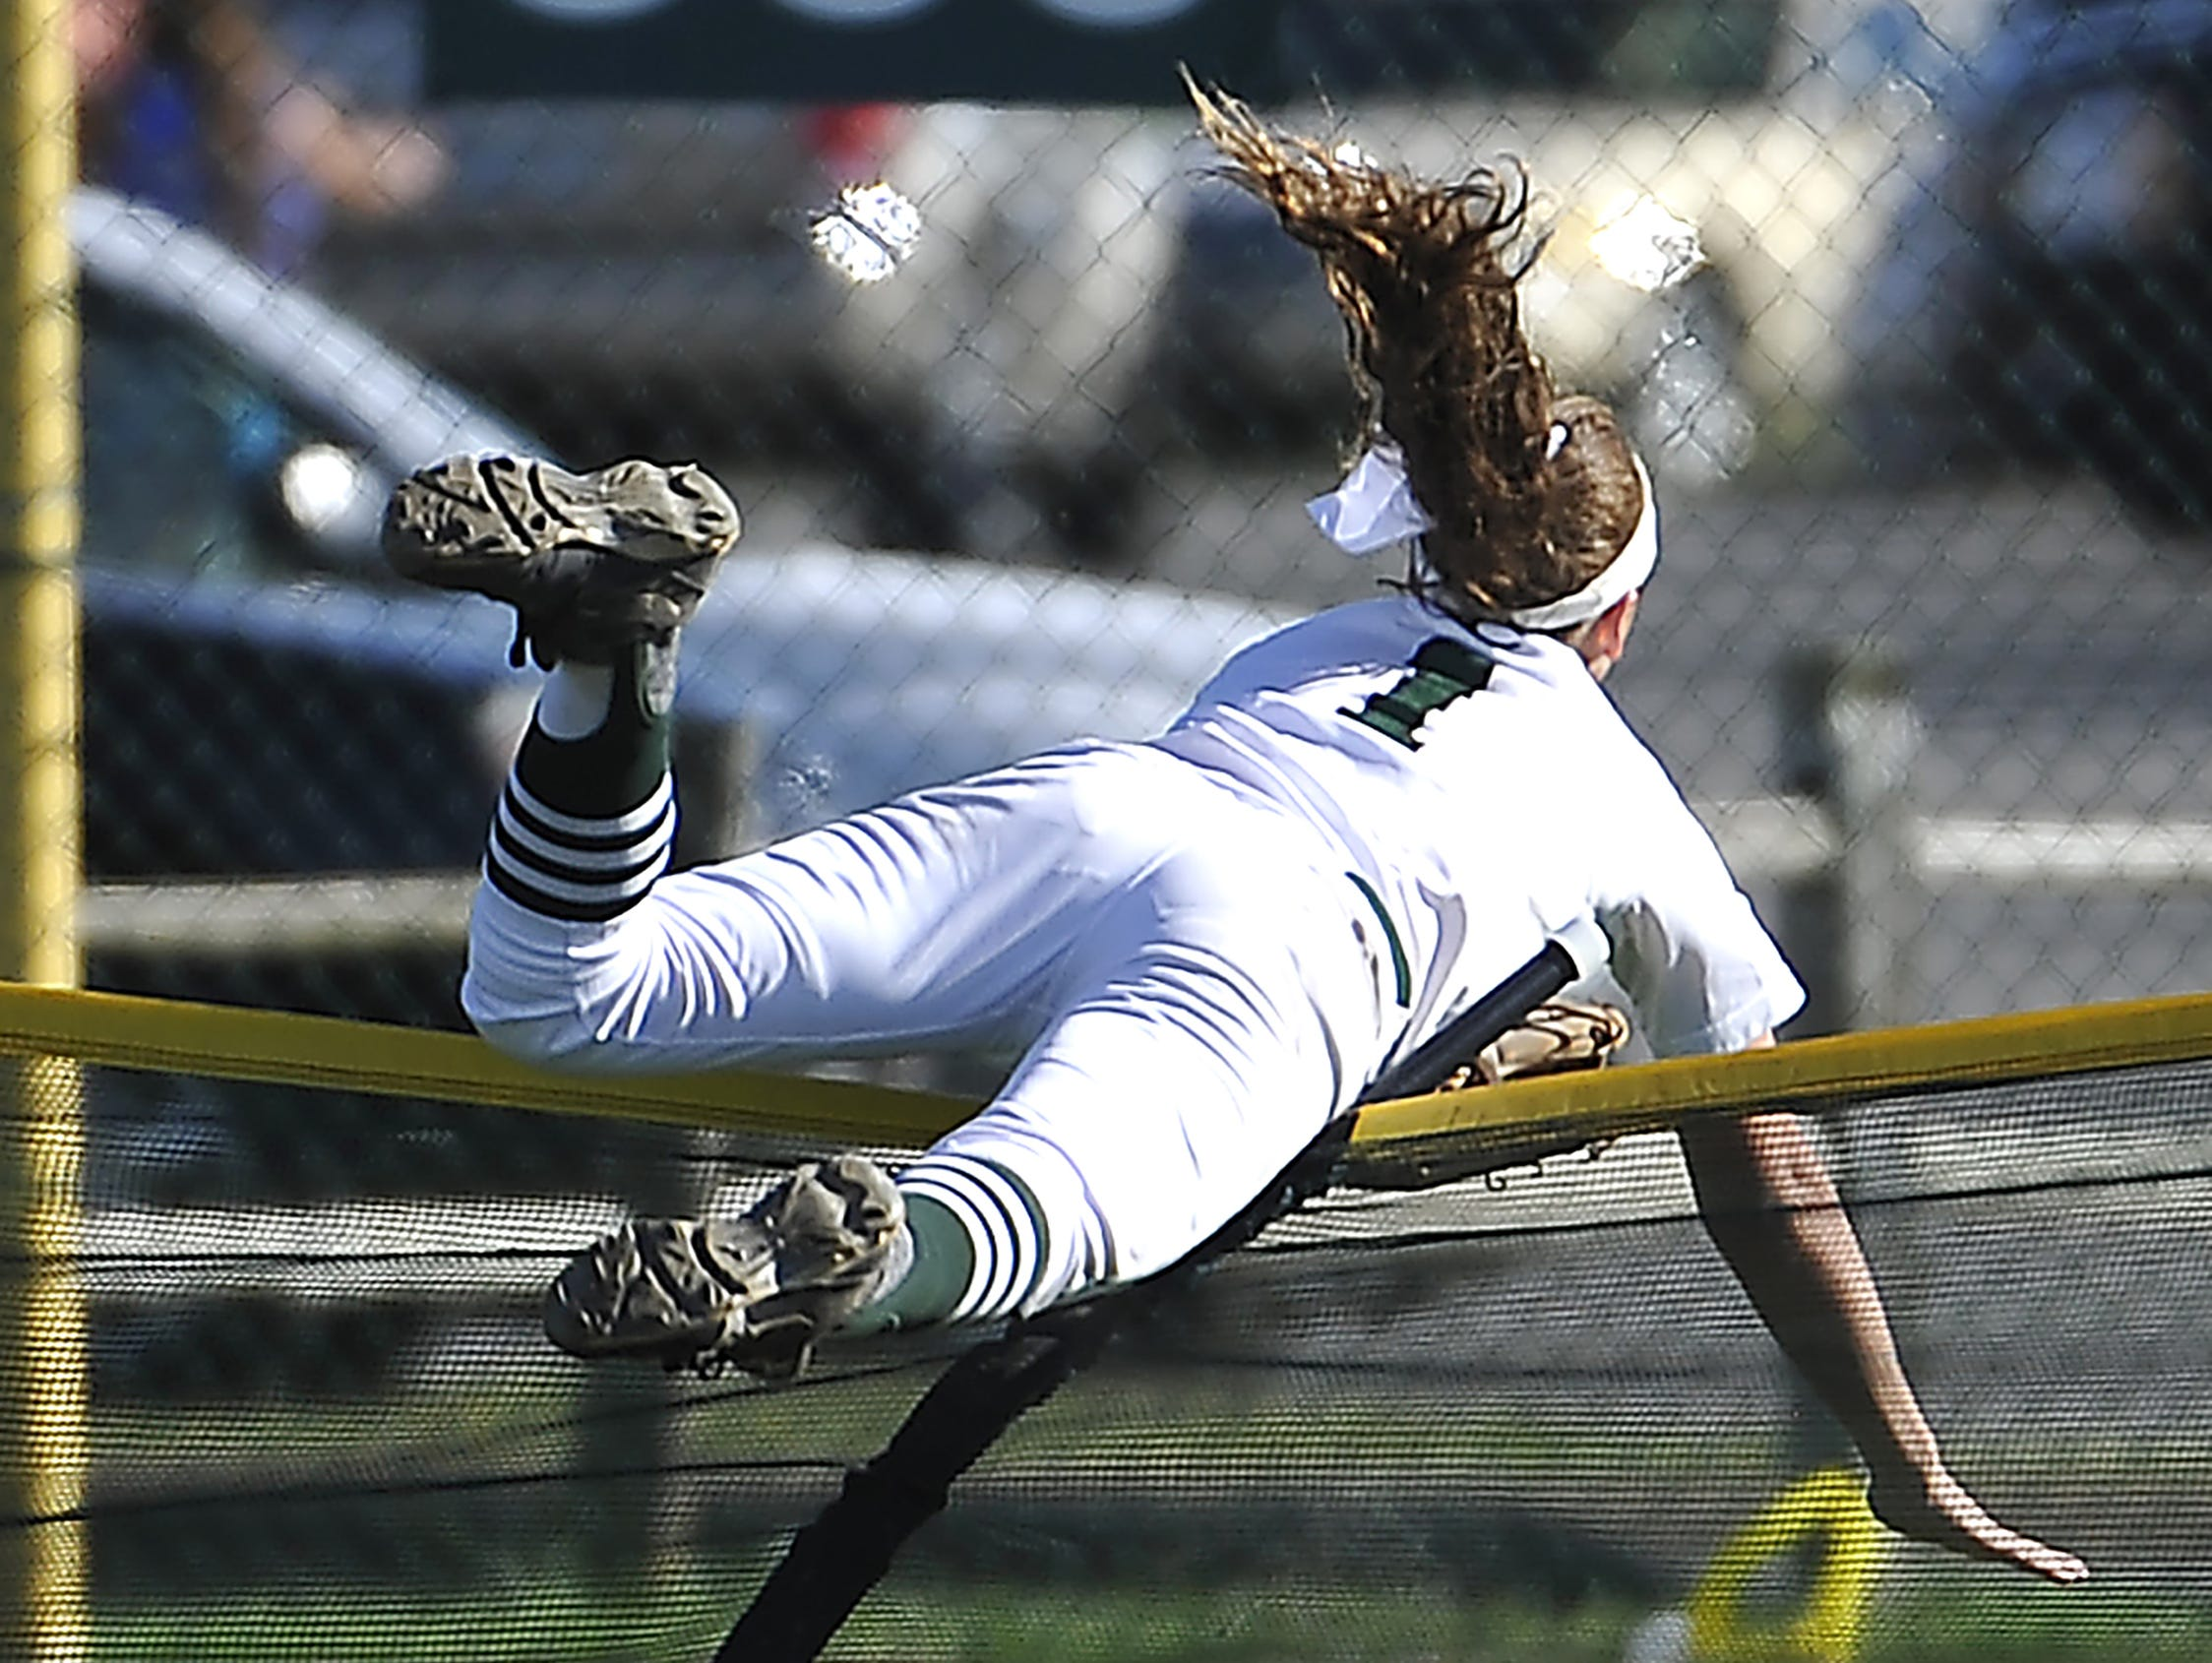 Outfielder Brooke Eakes goes over the fence after catching what would have been a home run as Friendship Christian plays Kings Academy in the A championship game Friday.